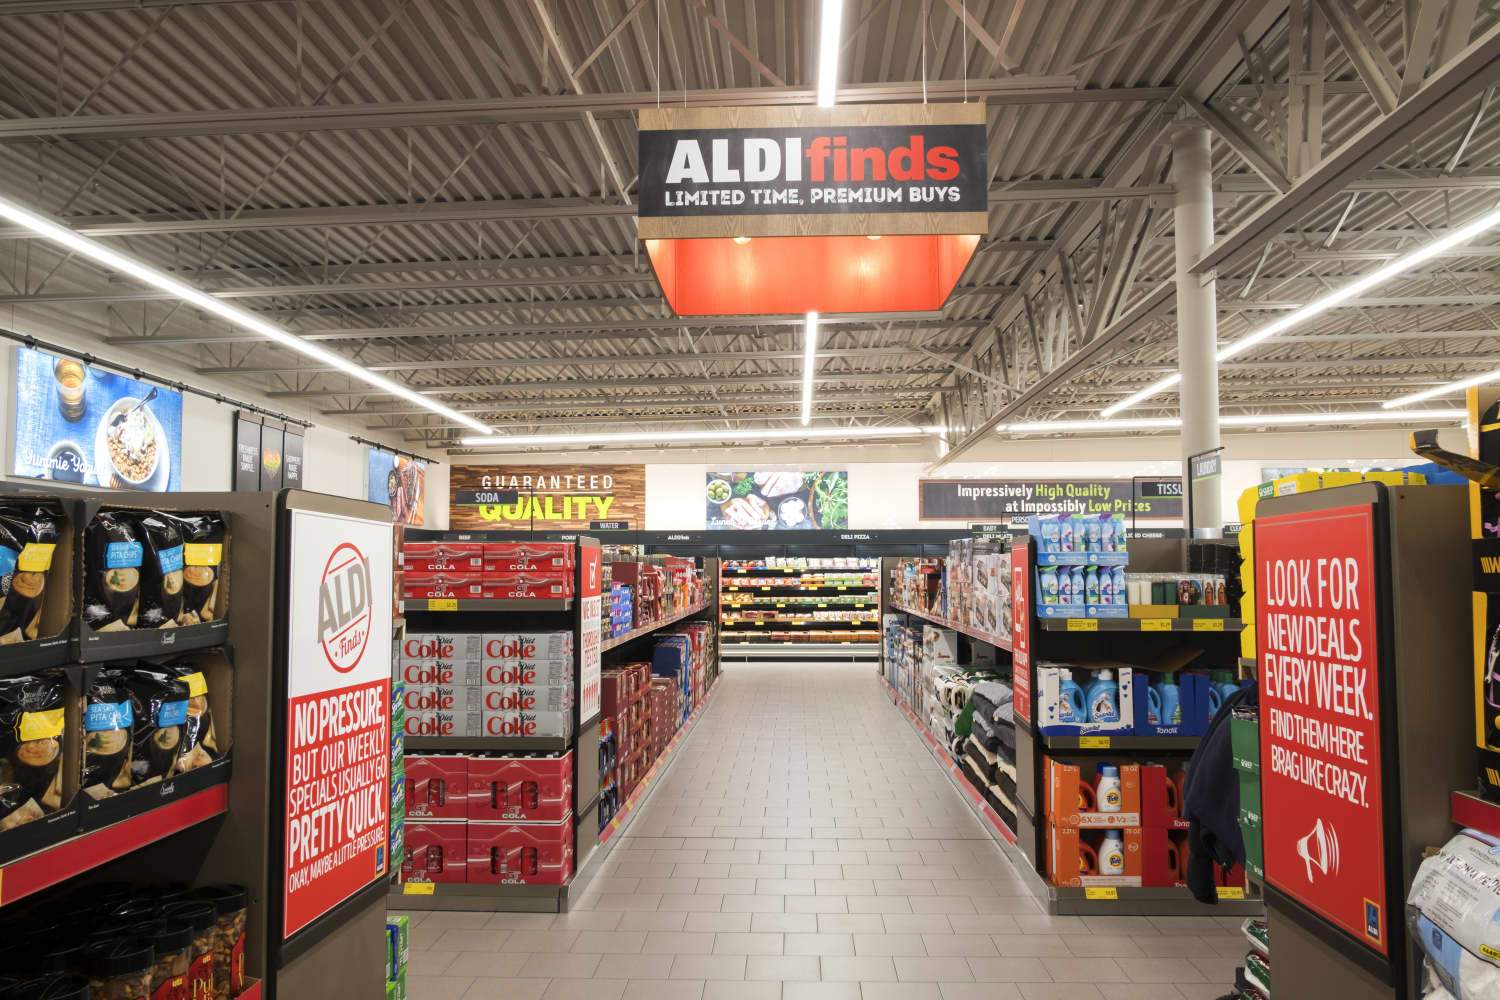 You Can Now Buy Your Groceries At Kohl's